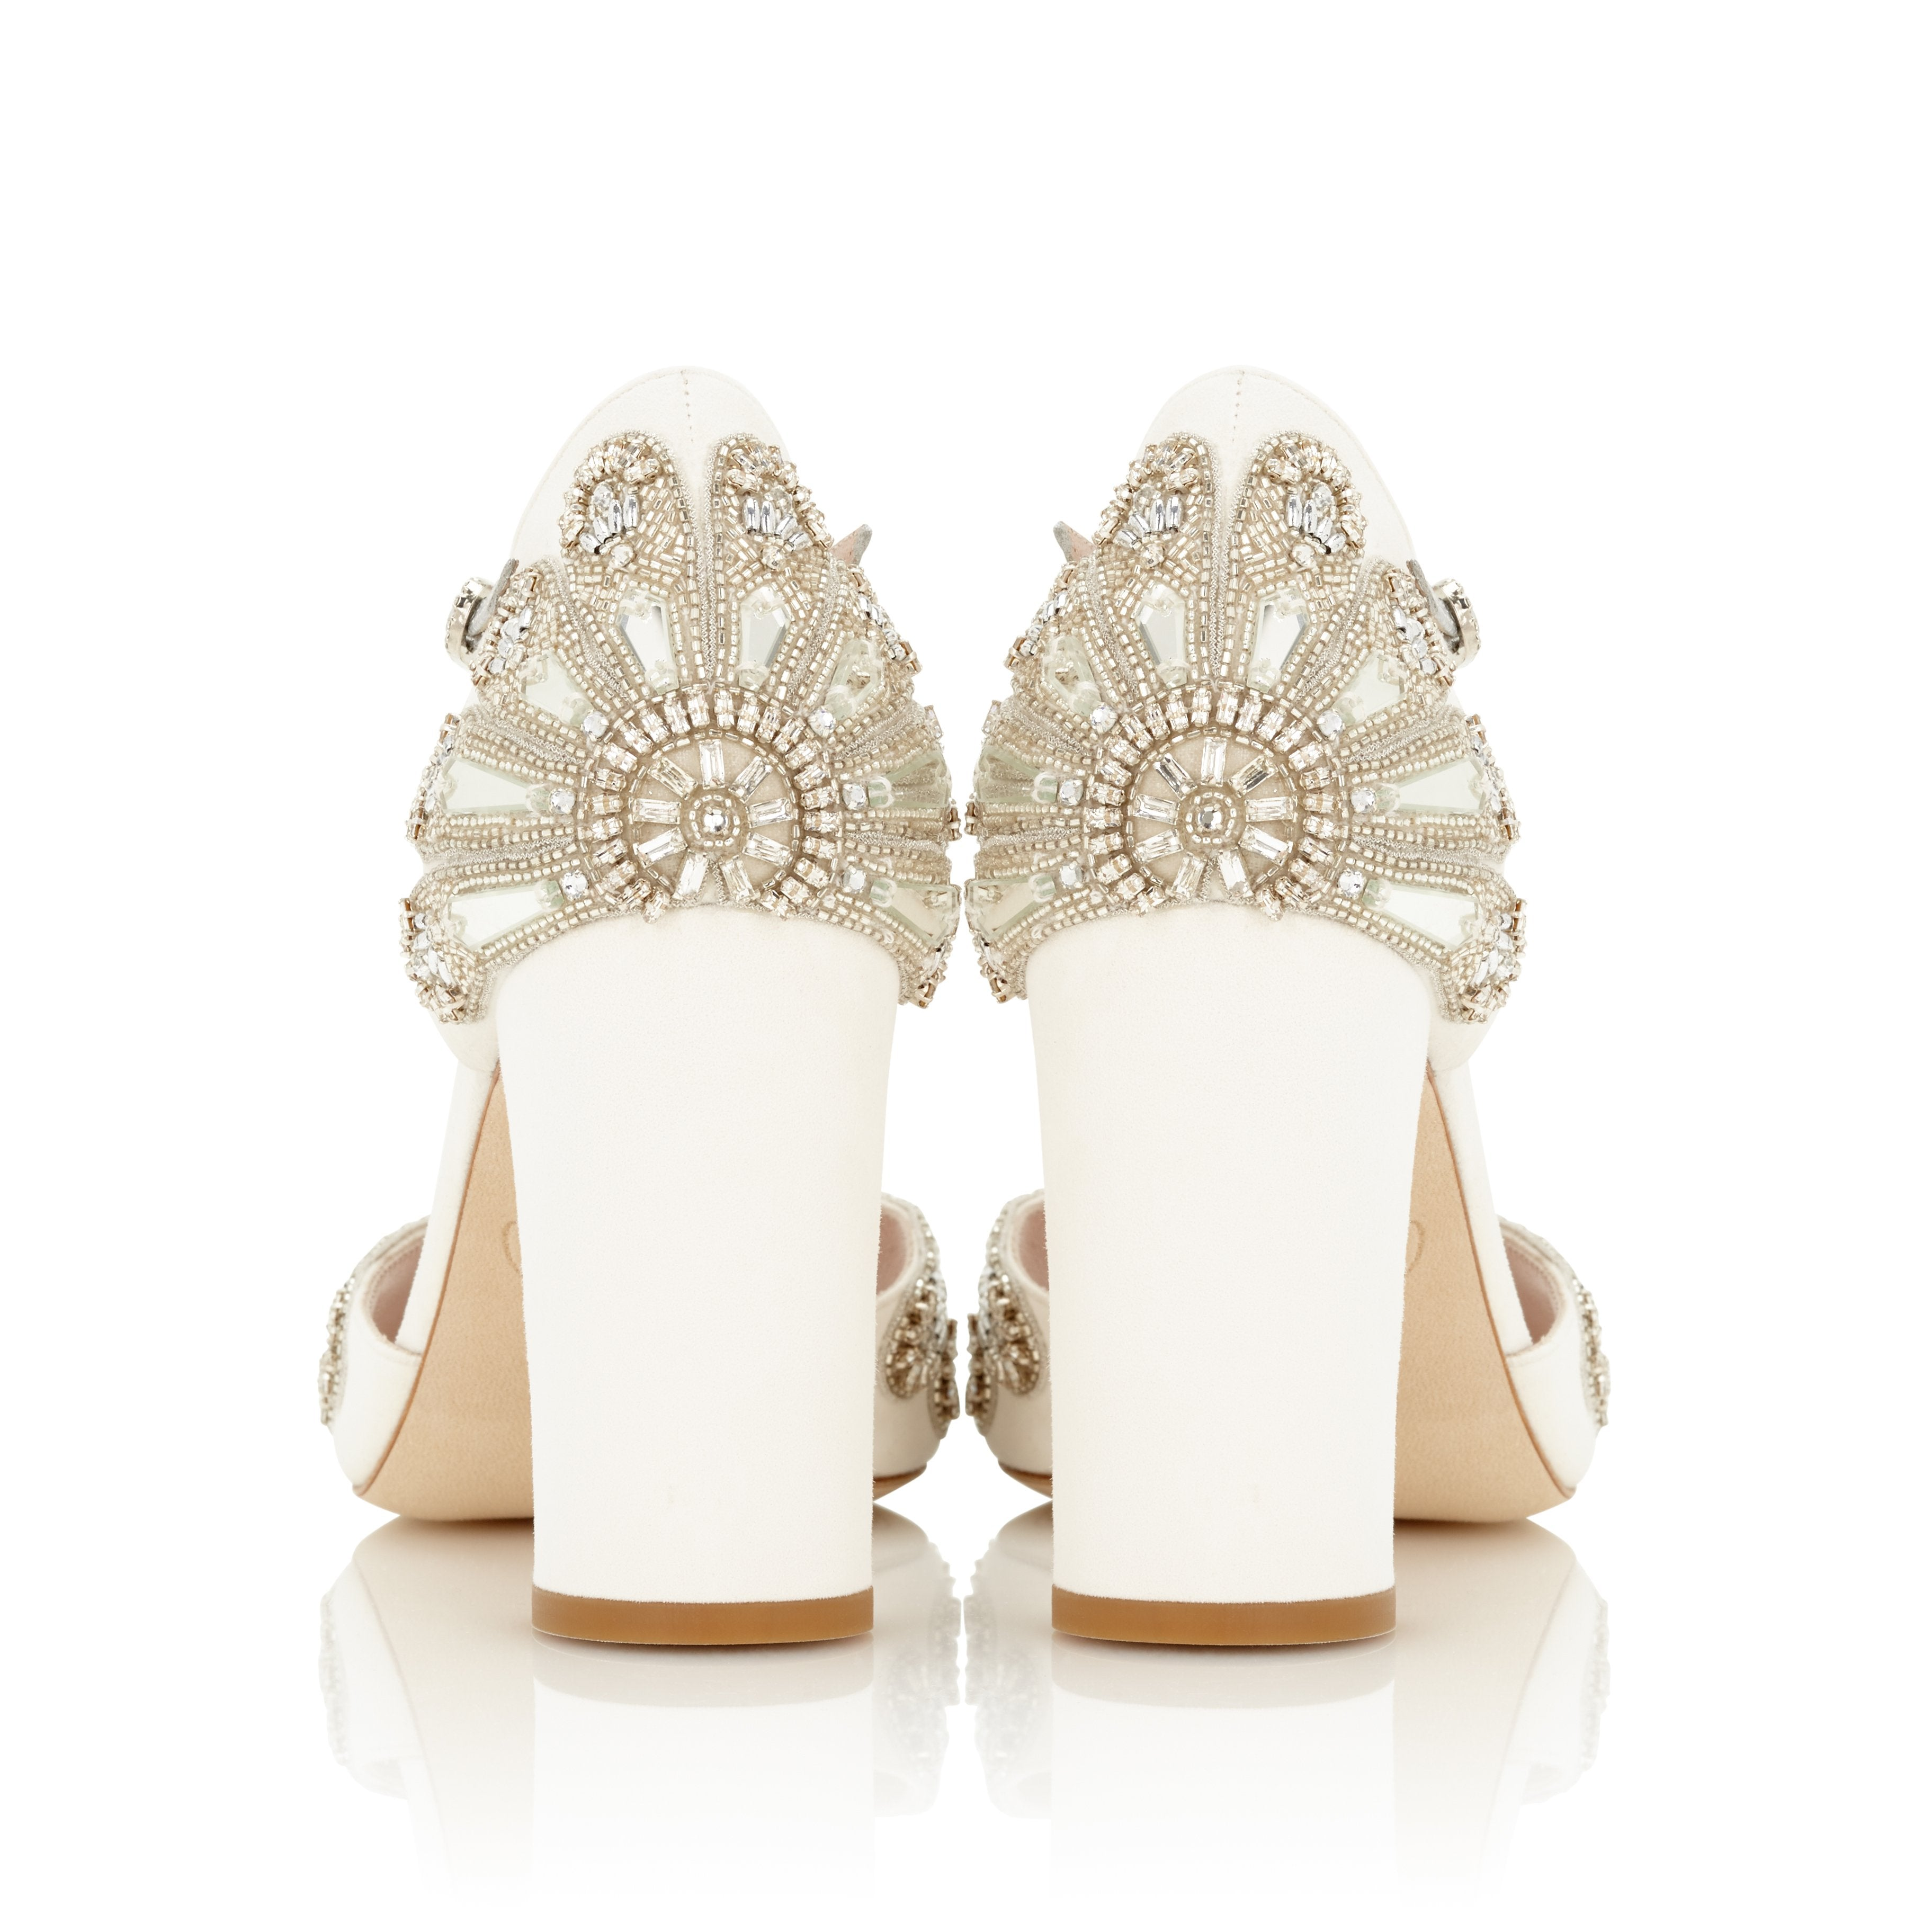 846dc5ca0e23 ... Cinderella Block Heel Bridal Shoes Ivory Suede Embellished Wedding  Sandal with Silver Details ...